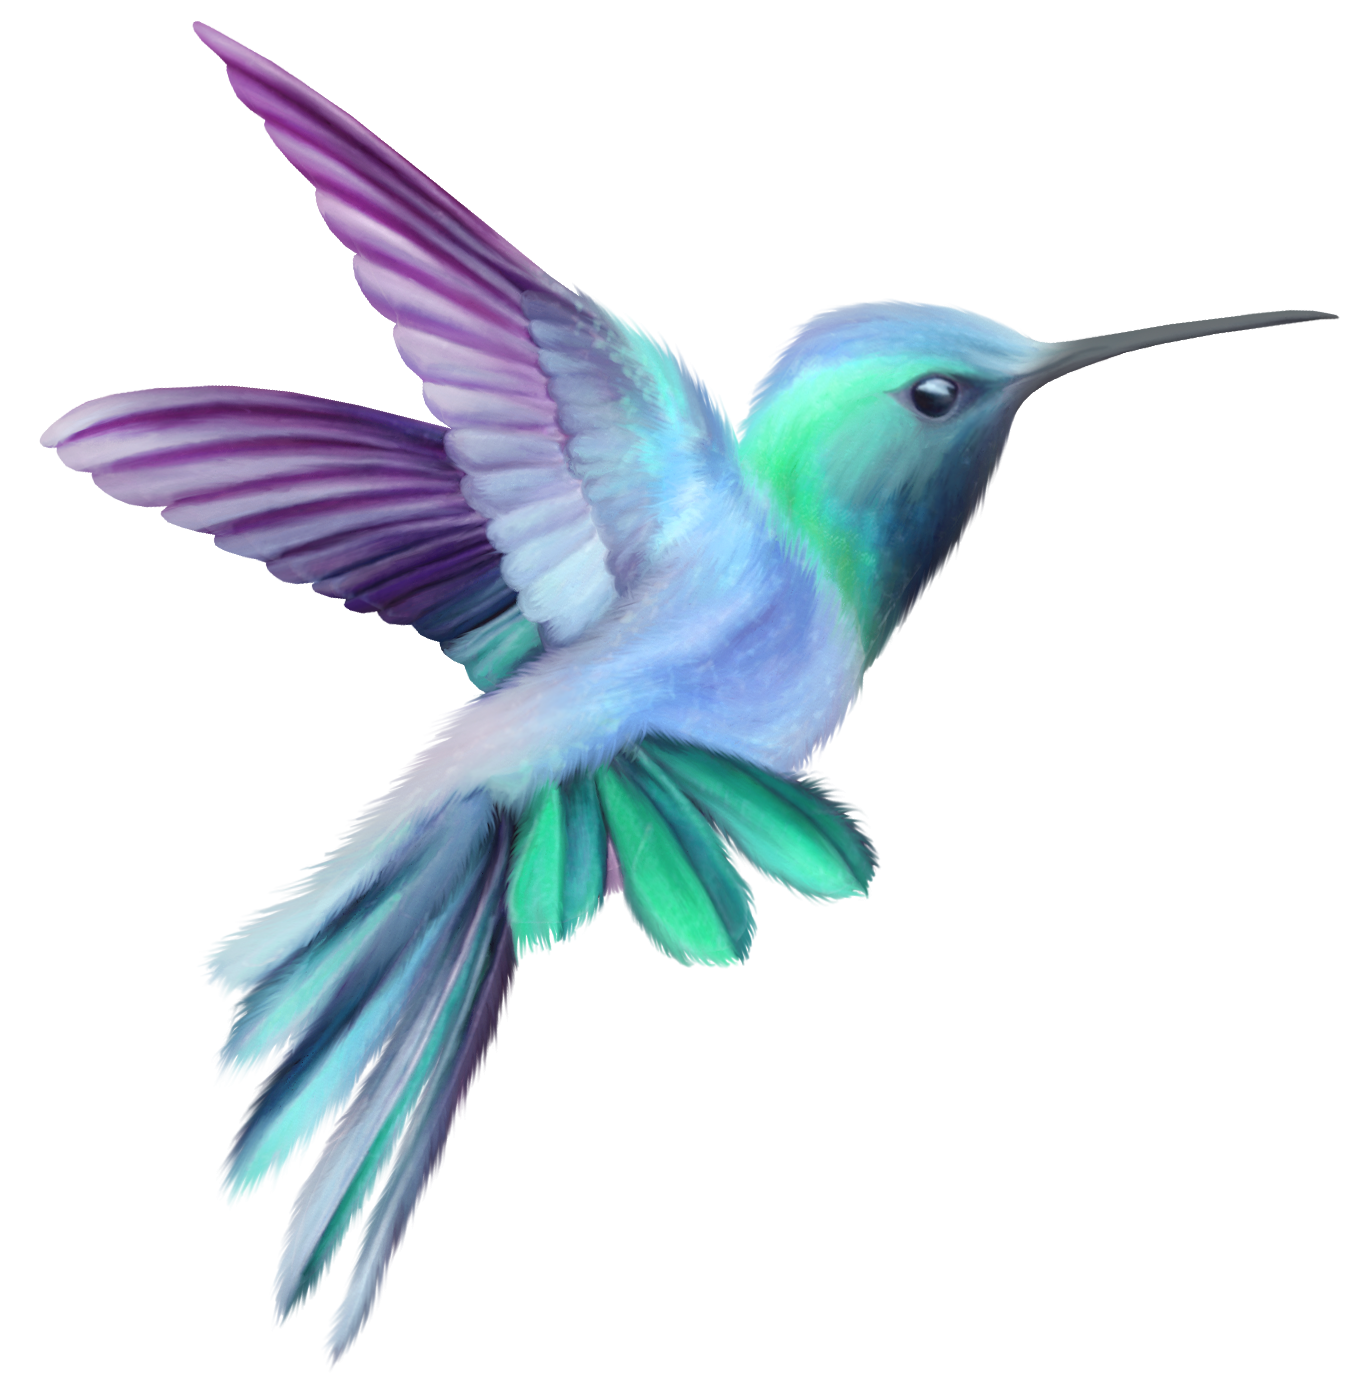 black and white library Hummingbird clipart. Transparent clip art image